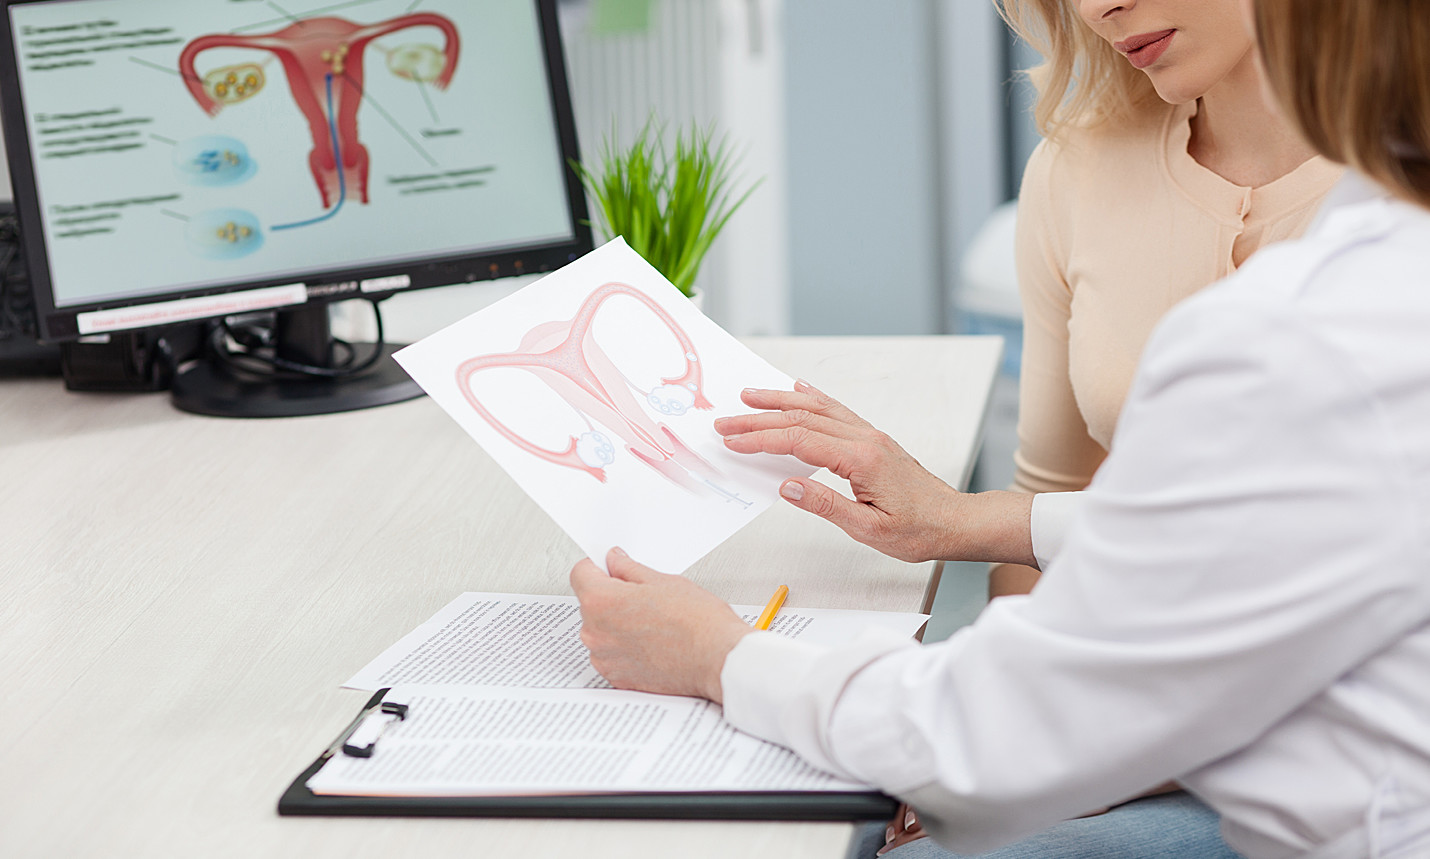 Women's Contraceptive Implant Faces New Restrictions by FDA